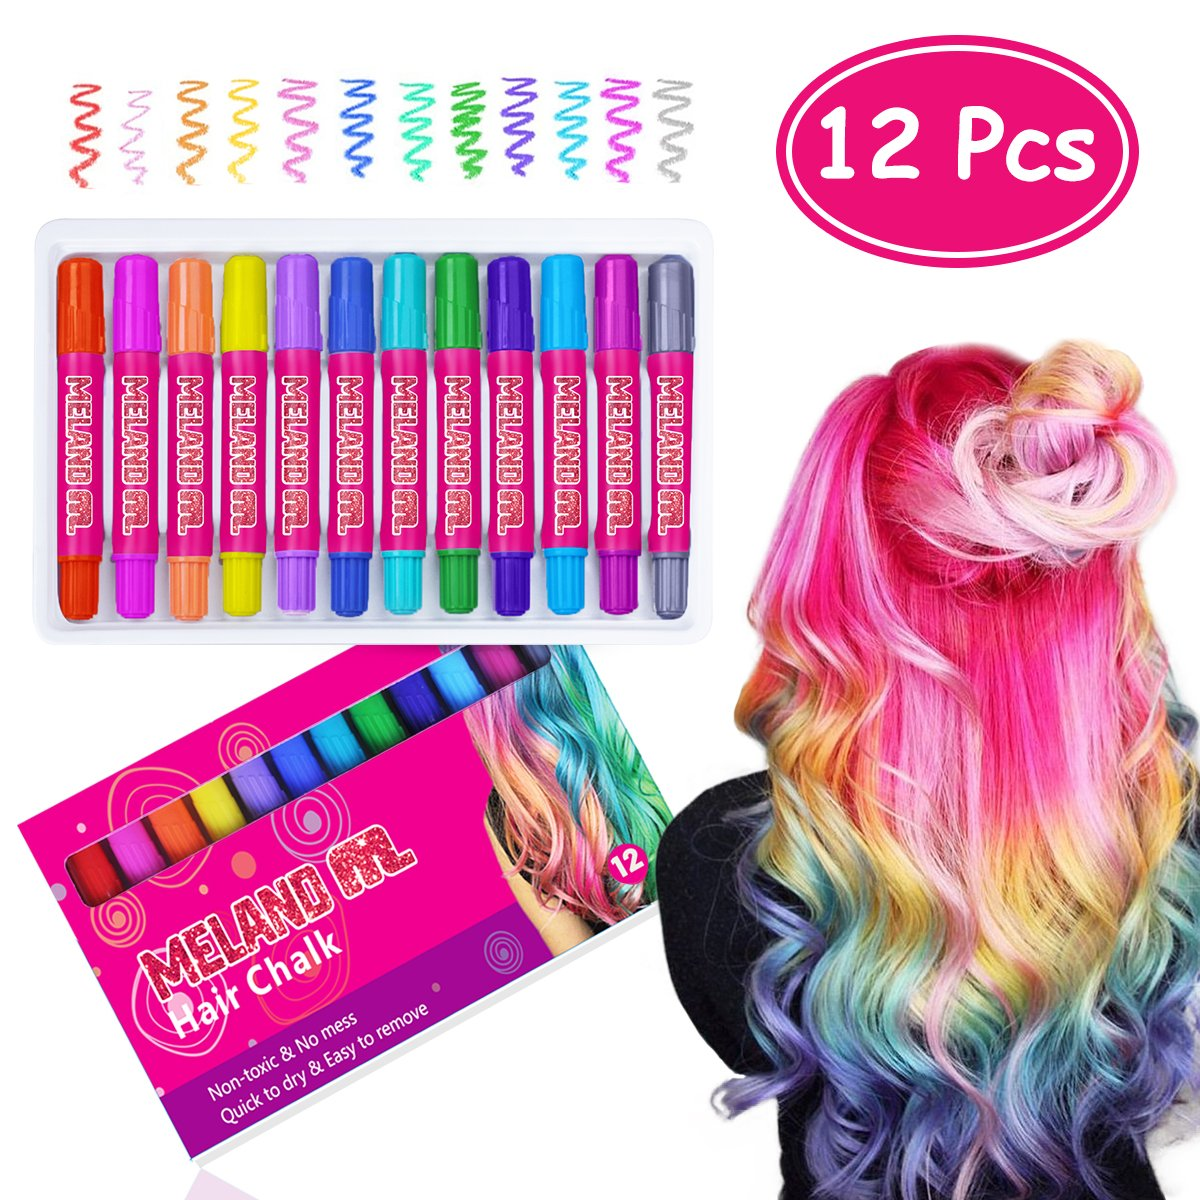 Meland Temporary Hair Chalk Set - 12 Colors Non Toxic Hair Chalk Pens, Hair Dye for Kids Girls and Adults Party Gift